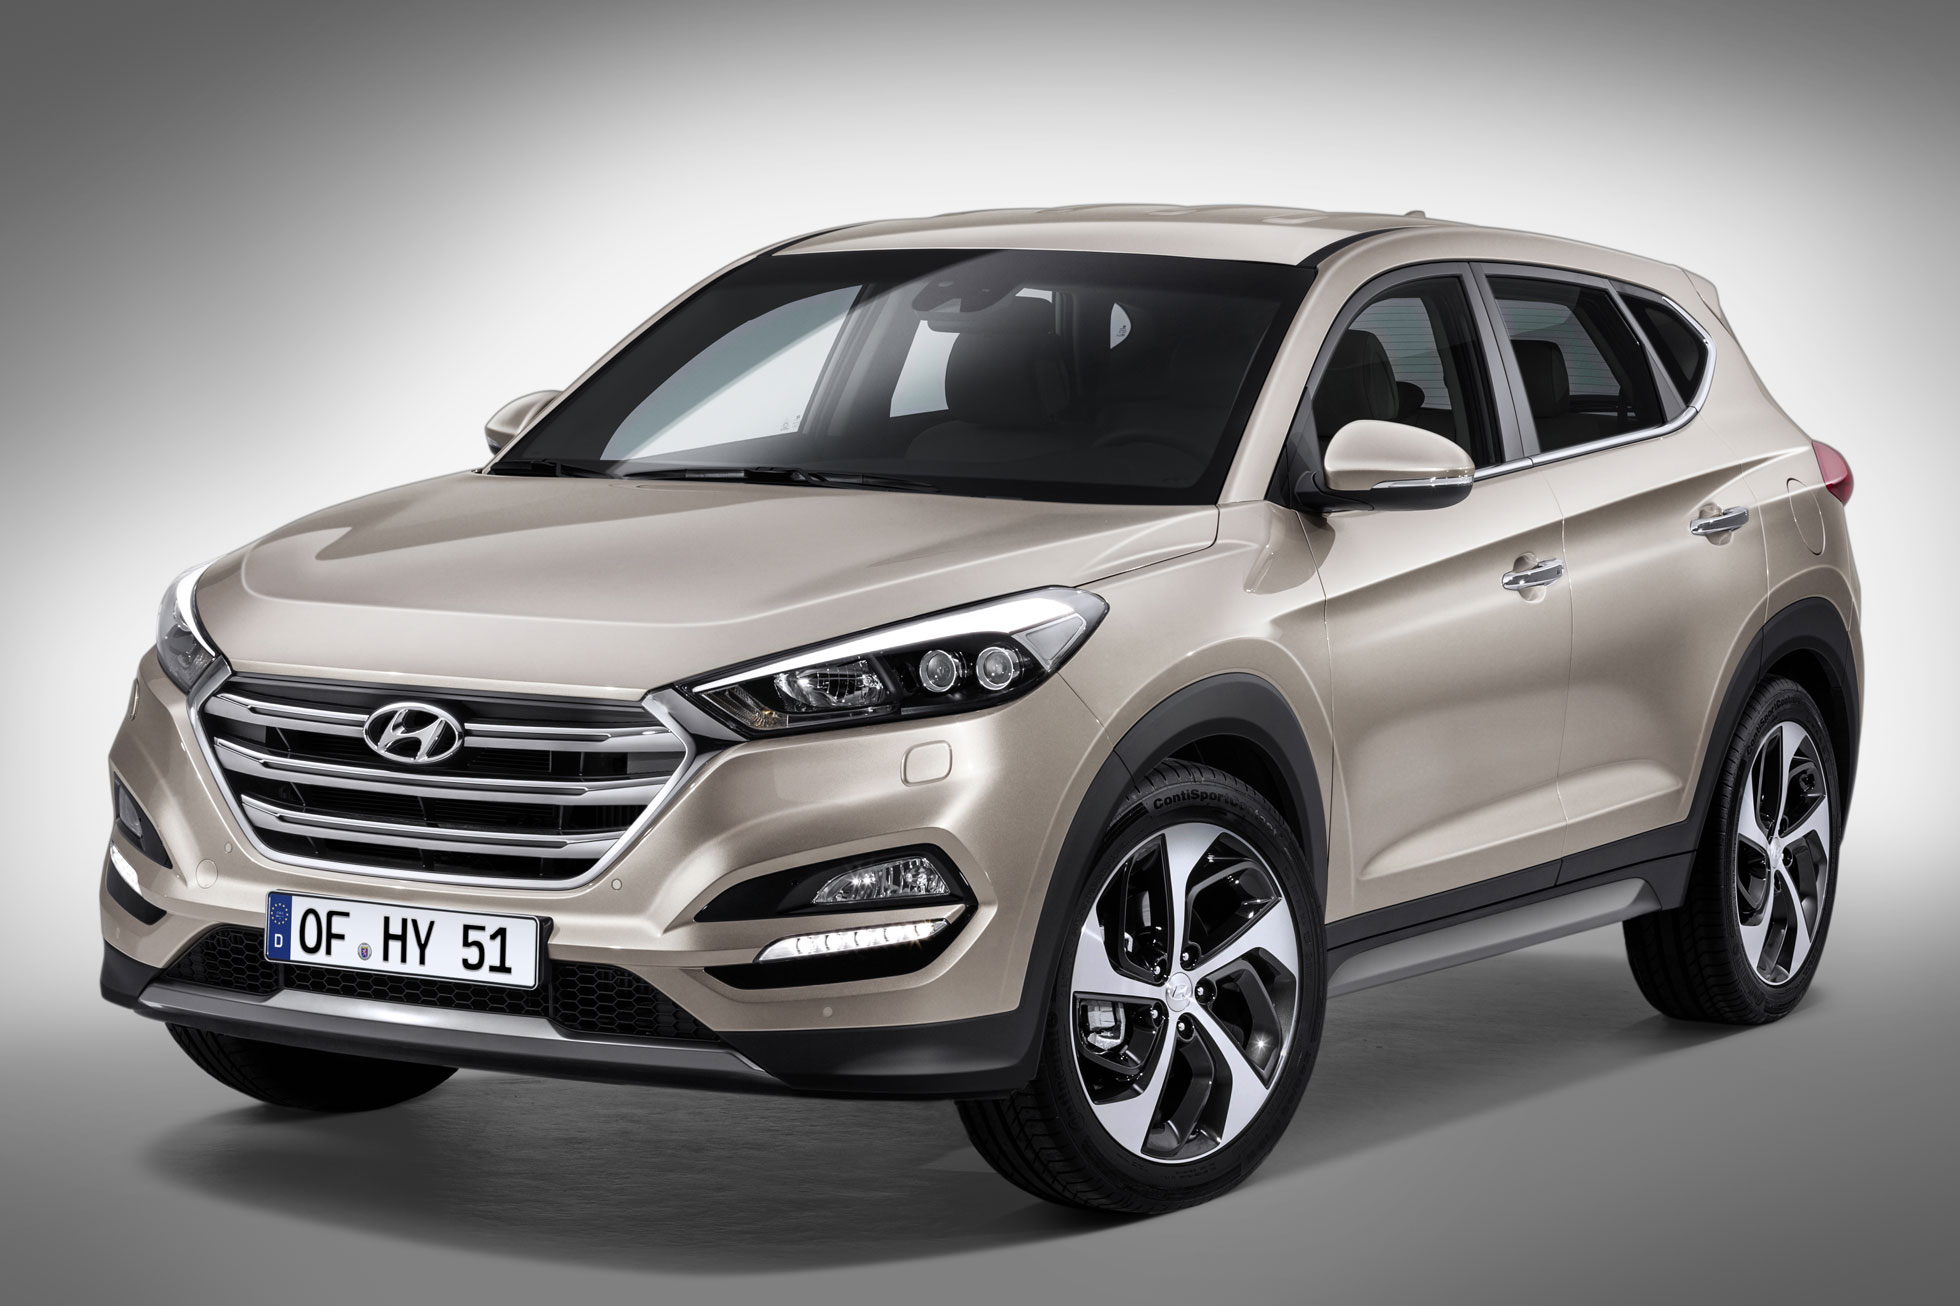 Hyundai reveals Tucson SUV ahead of Geneva 2015